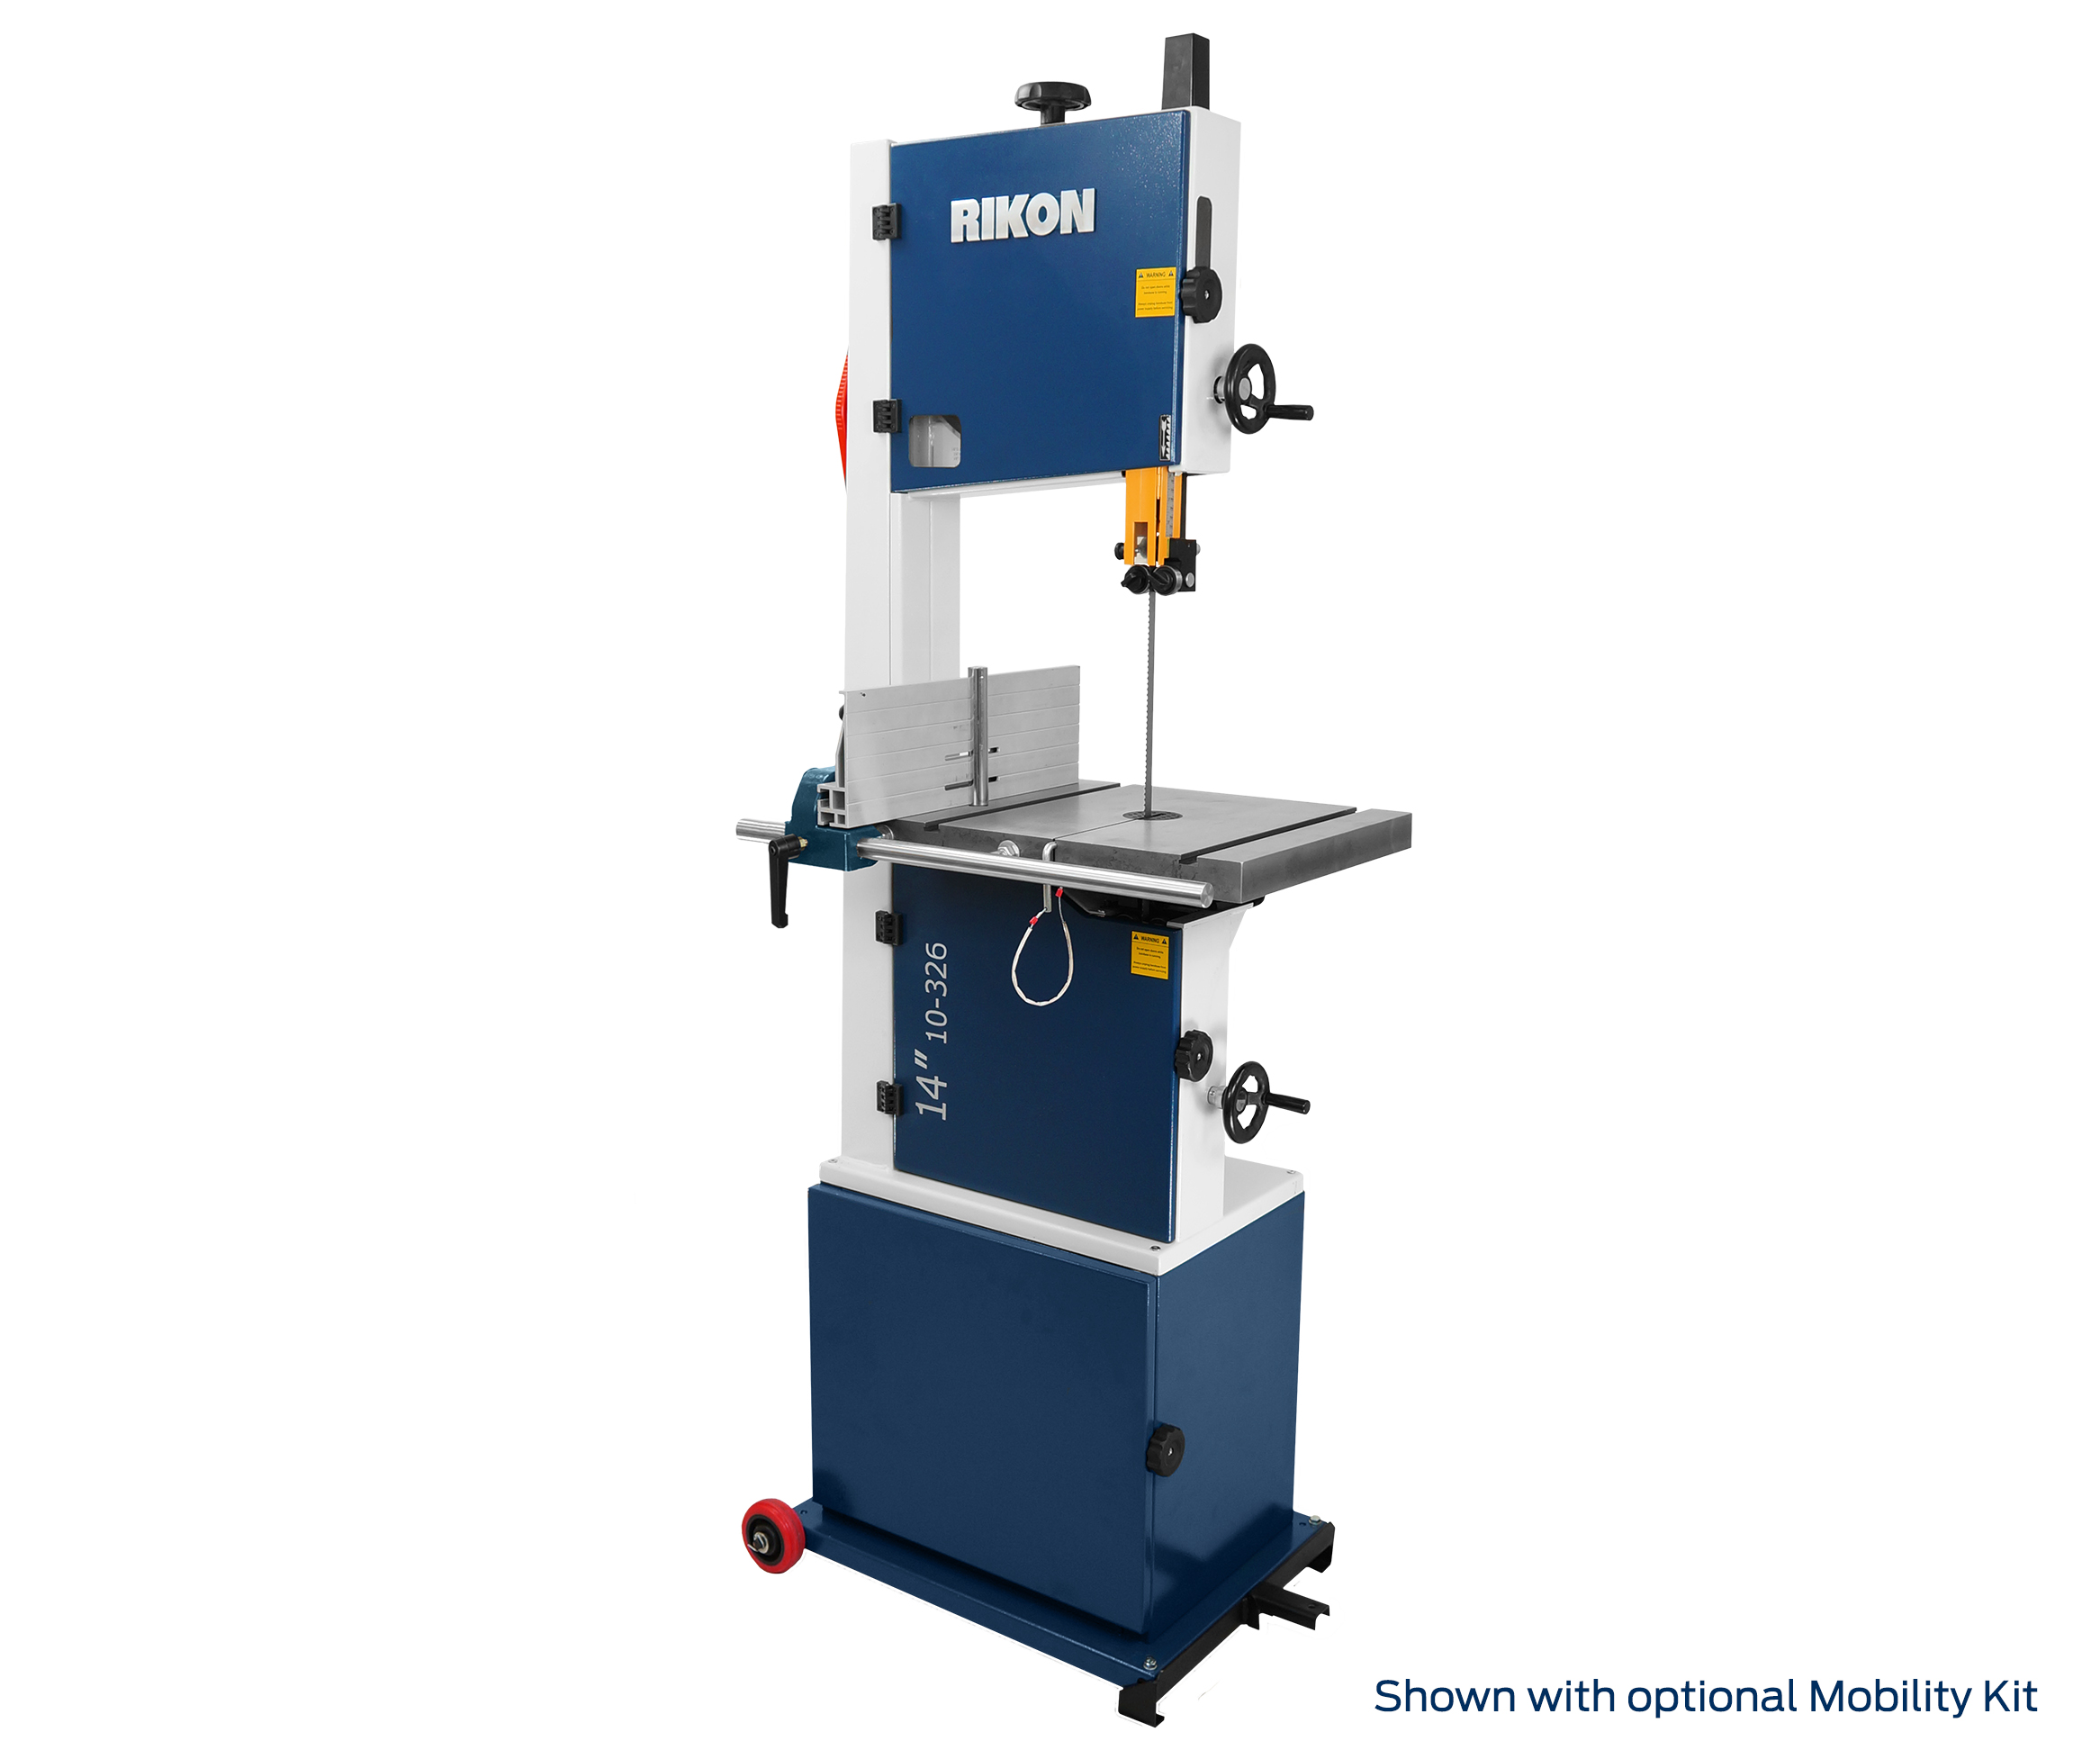 RIKON 10-326 14 inch Deluxe Bandsaw